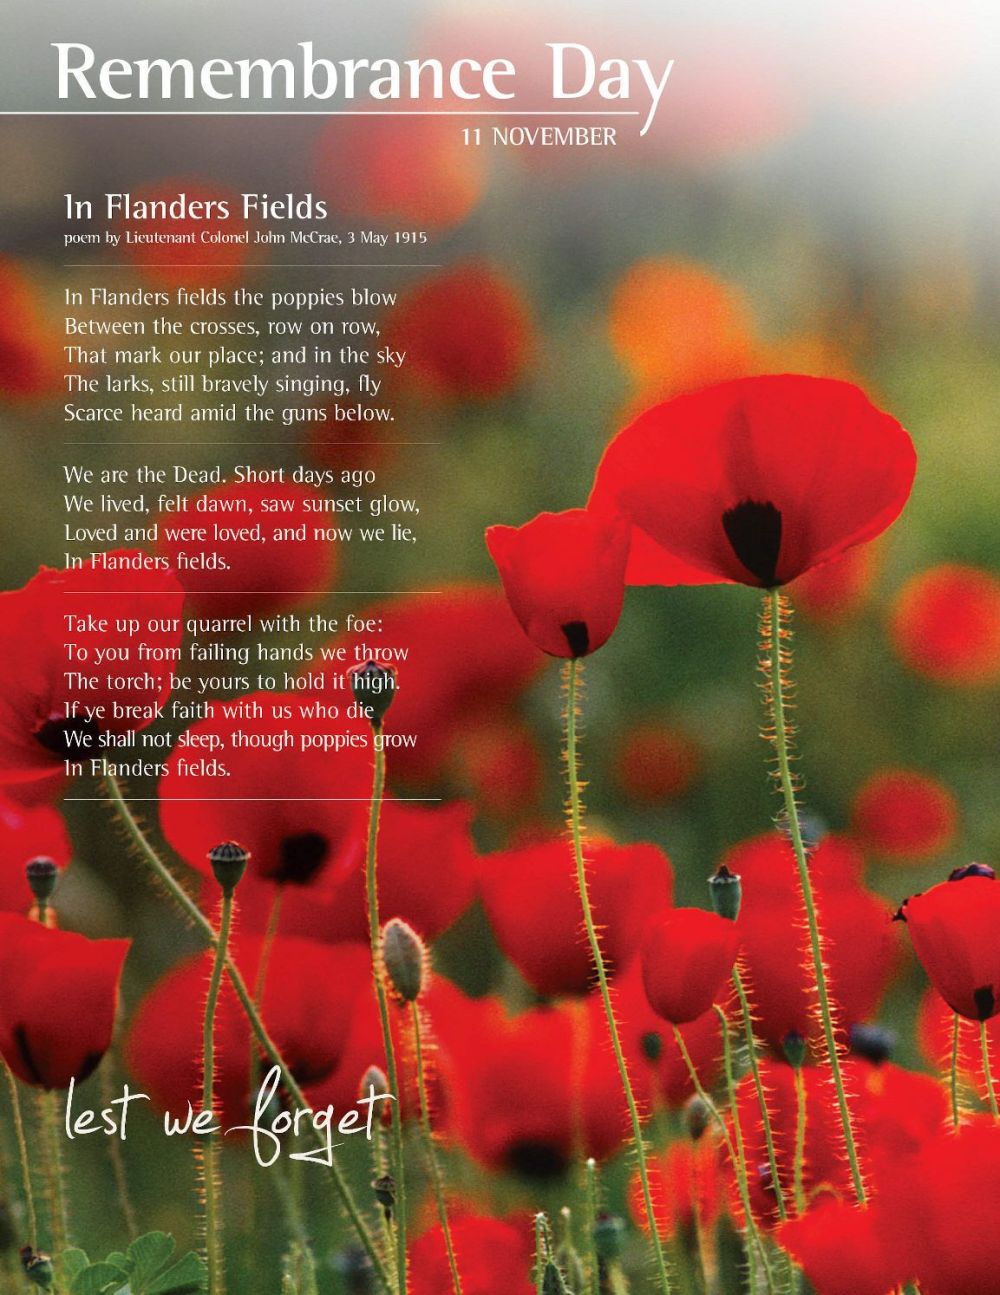 medium resolution of poppy clipart flanders field rememberance day remembrance cassiefairy image freeuse download